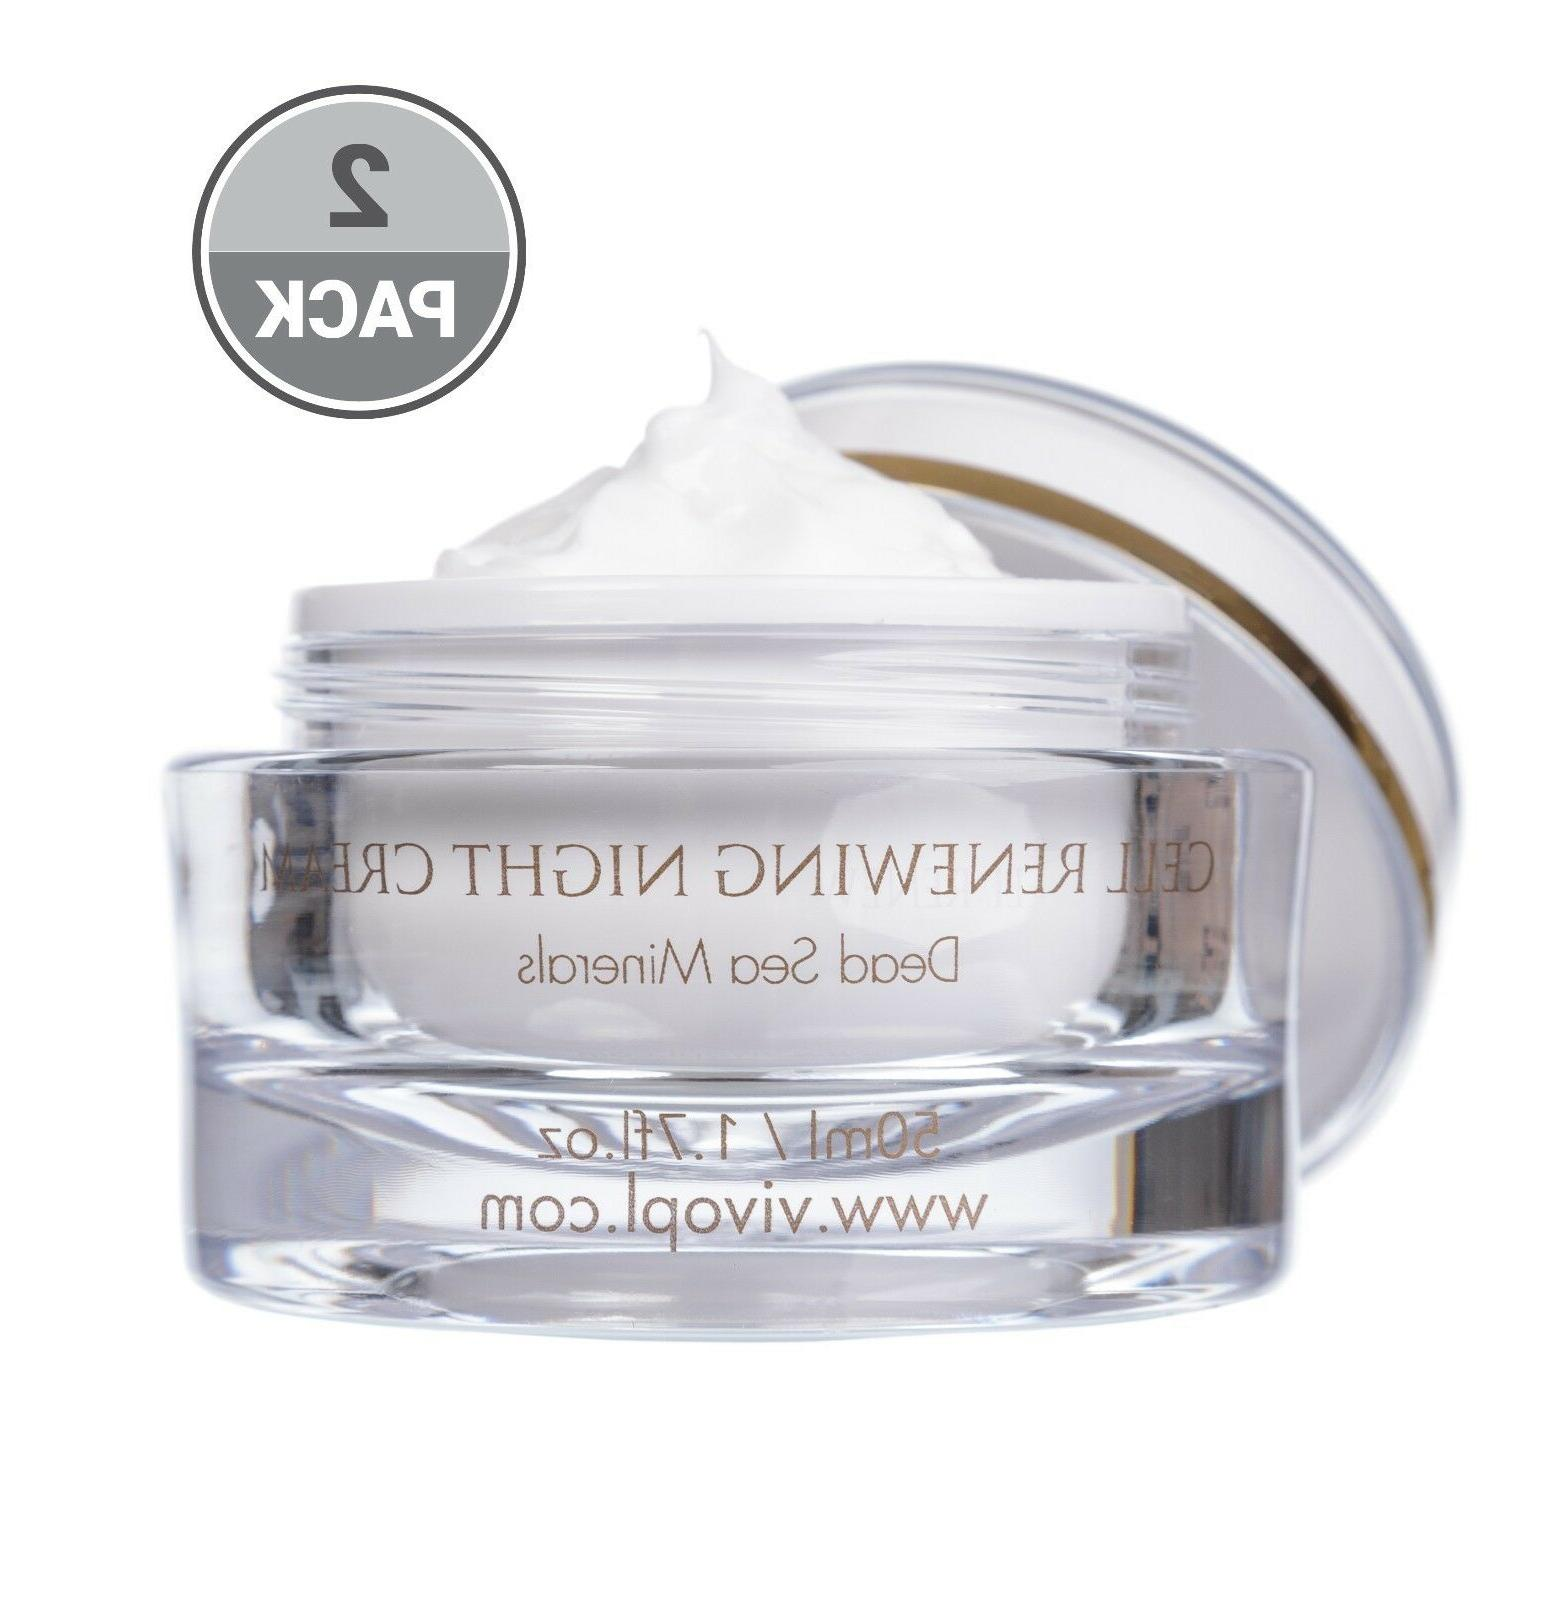 Vivo Per Lei Cell Renewal Night Cream, Look Younger,